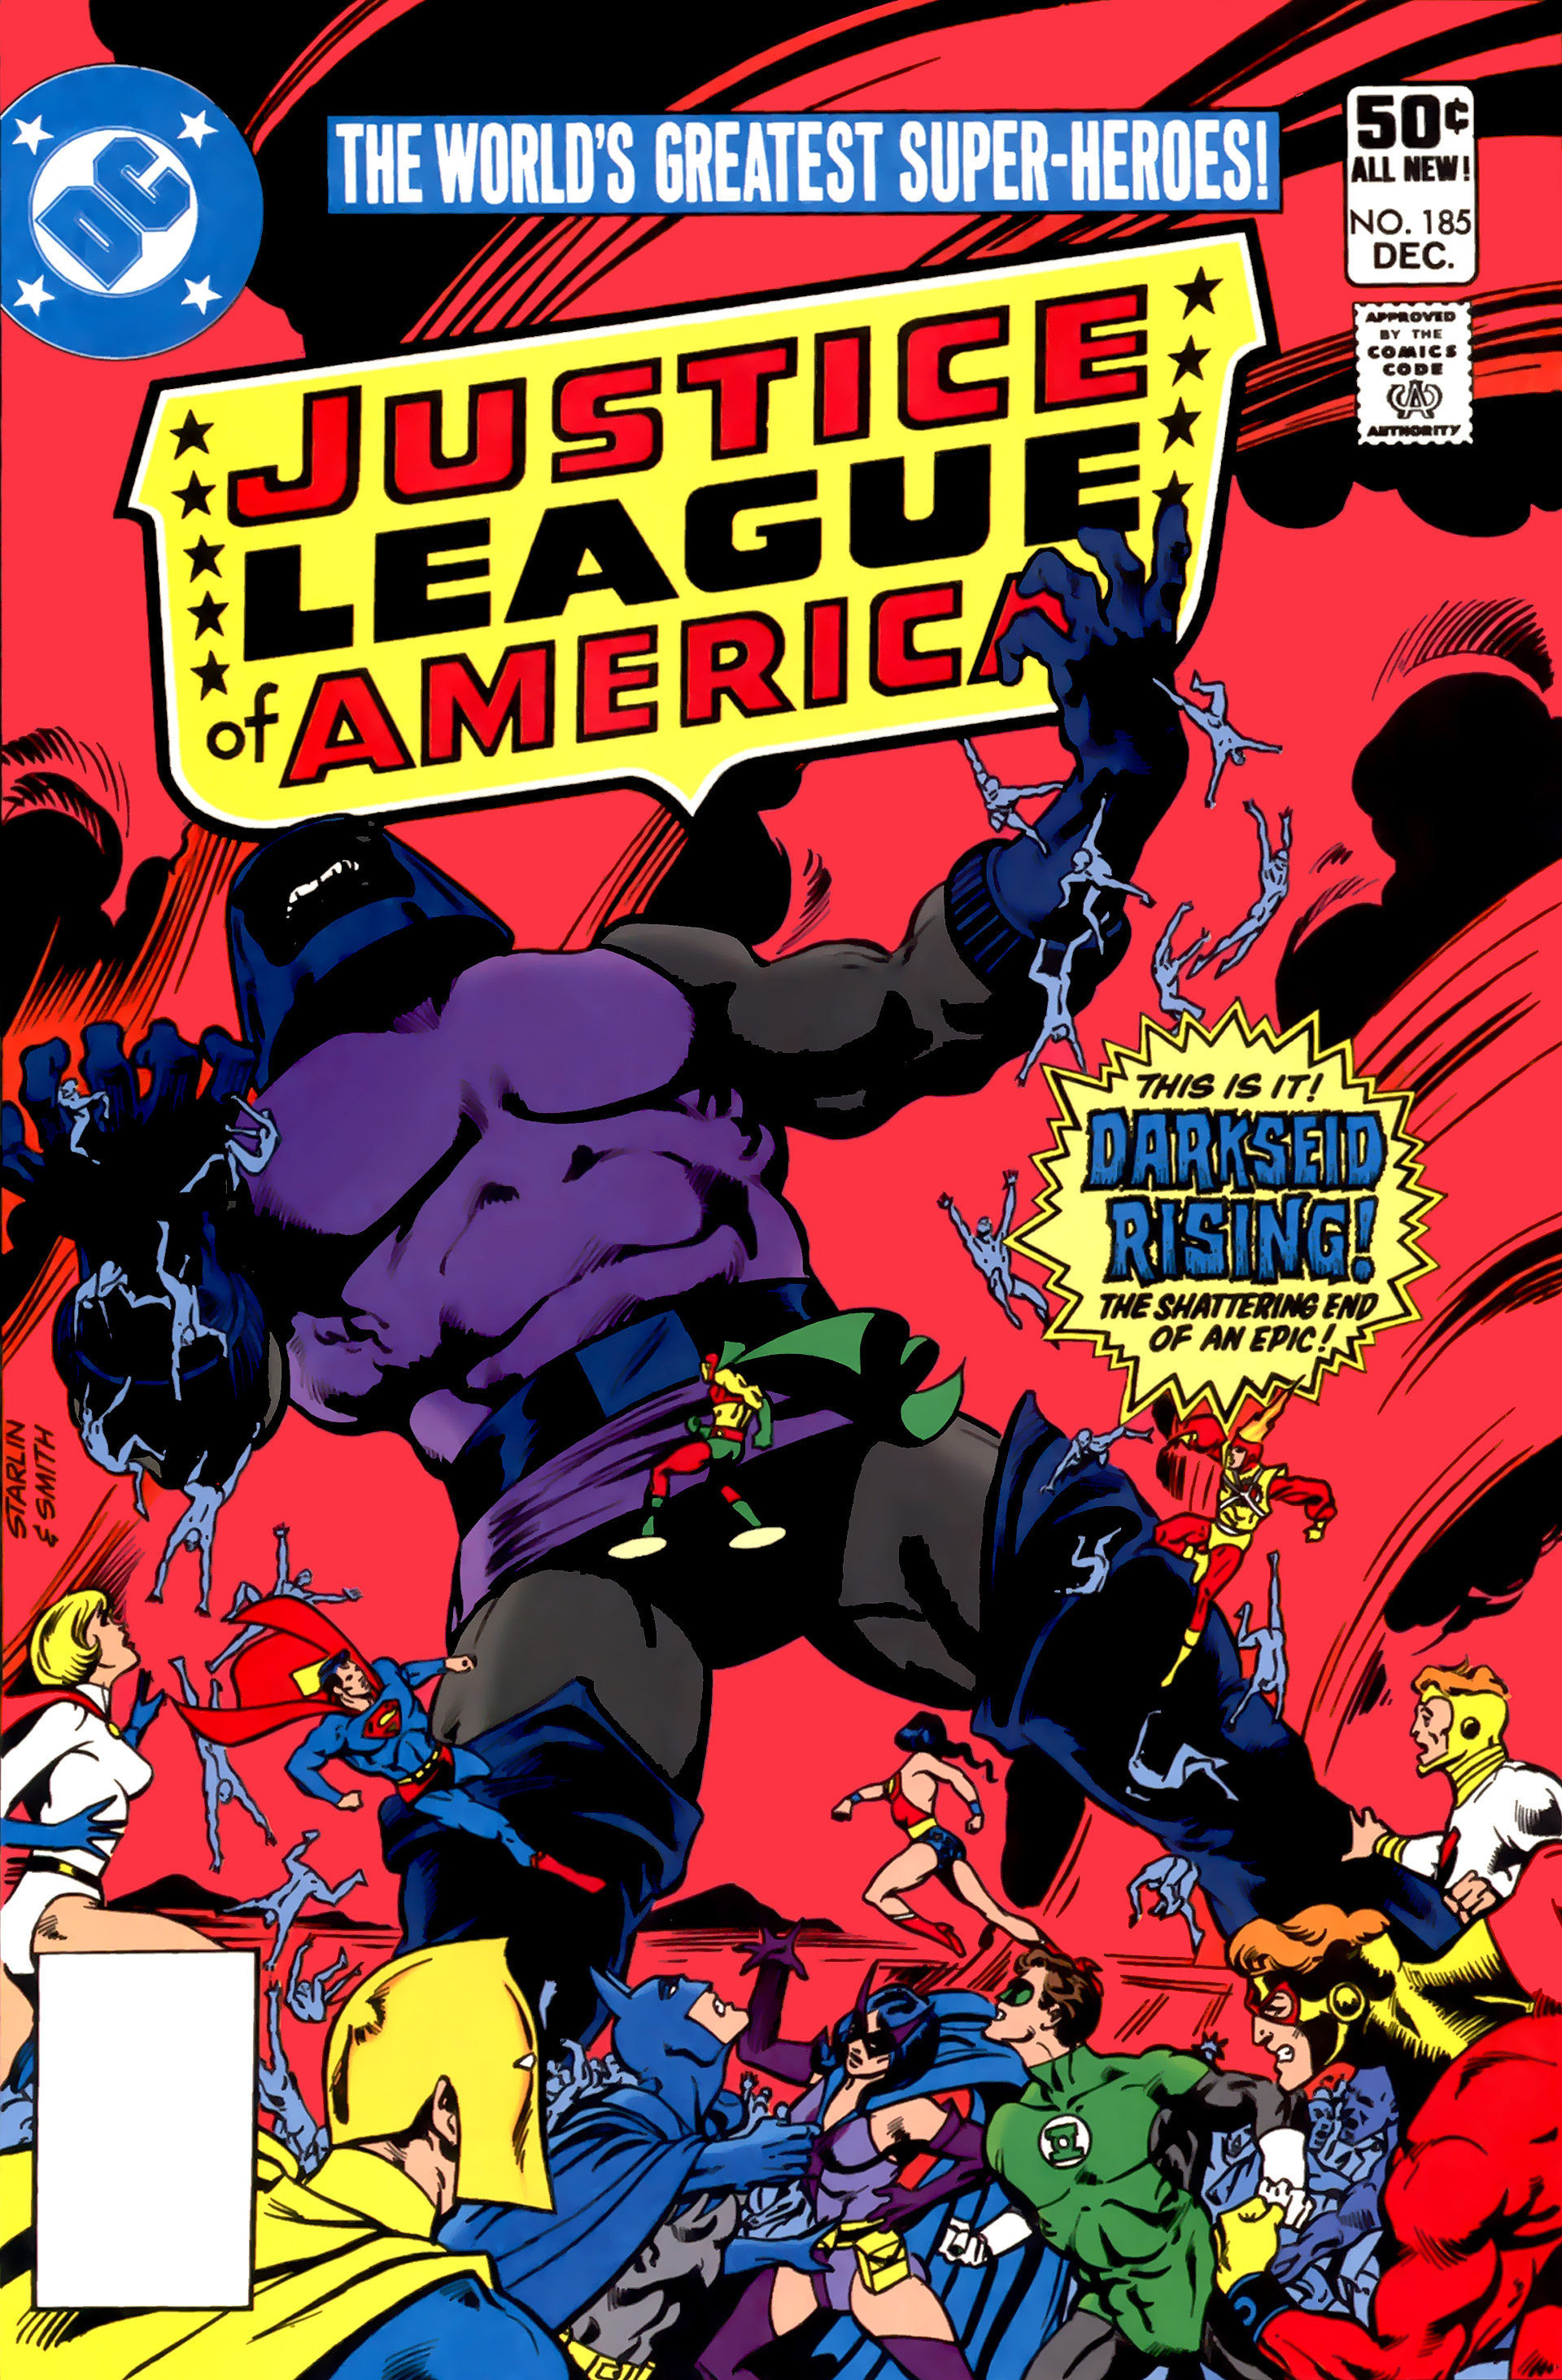 Justice League of America (1960) #185, cover penciled by Jim Starlin & inked by Bob Smith.